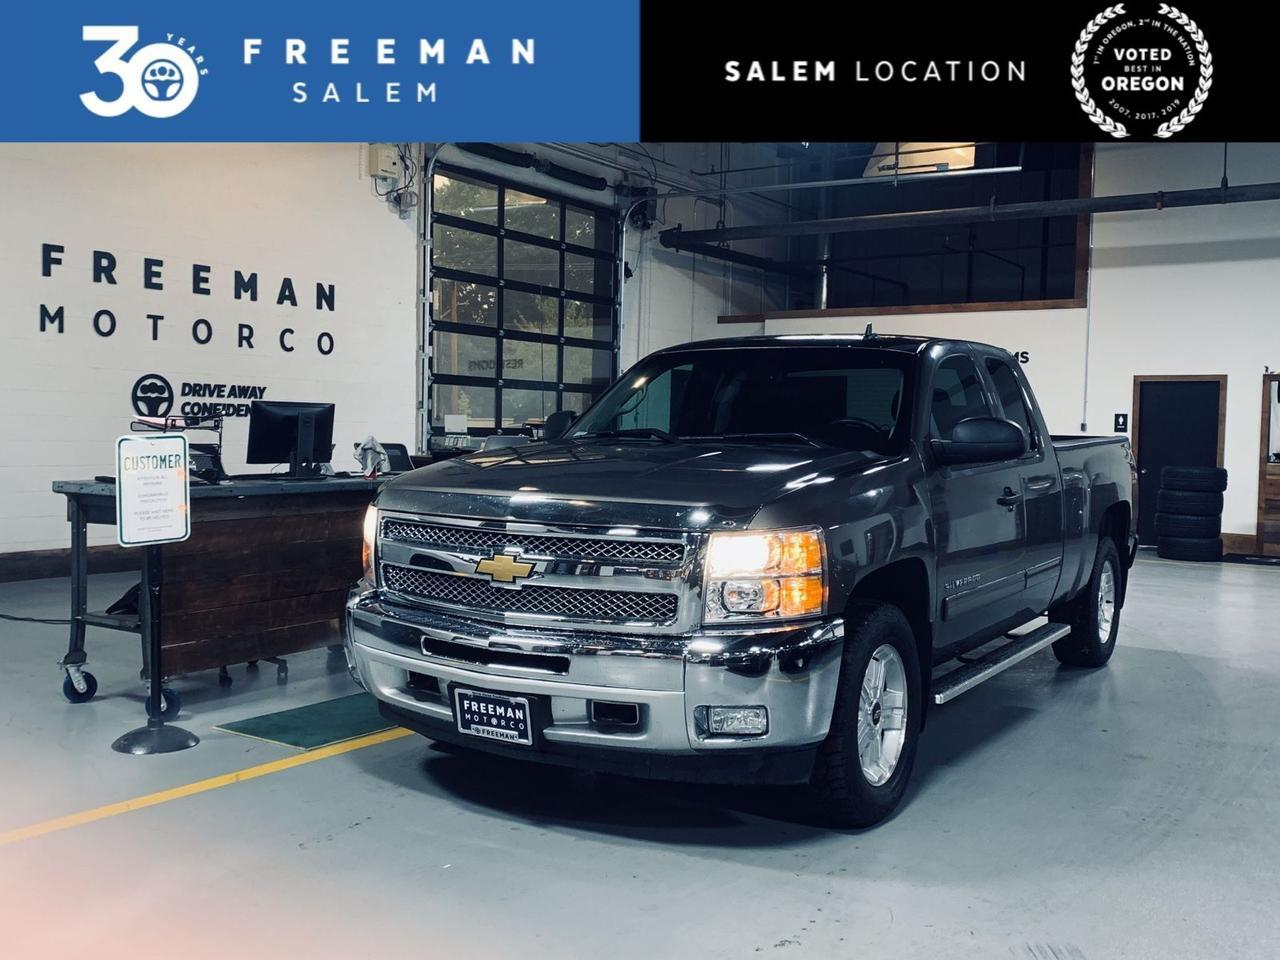 2013 Chevrolet Silverado 1500 LT Z71 All-Star Edition Backup Cam Remote Start Salem OR